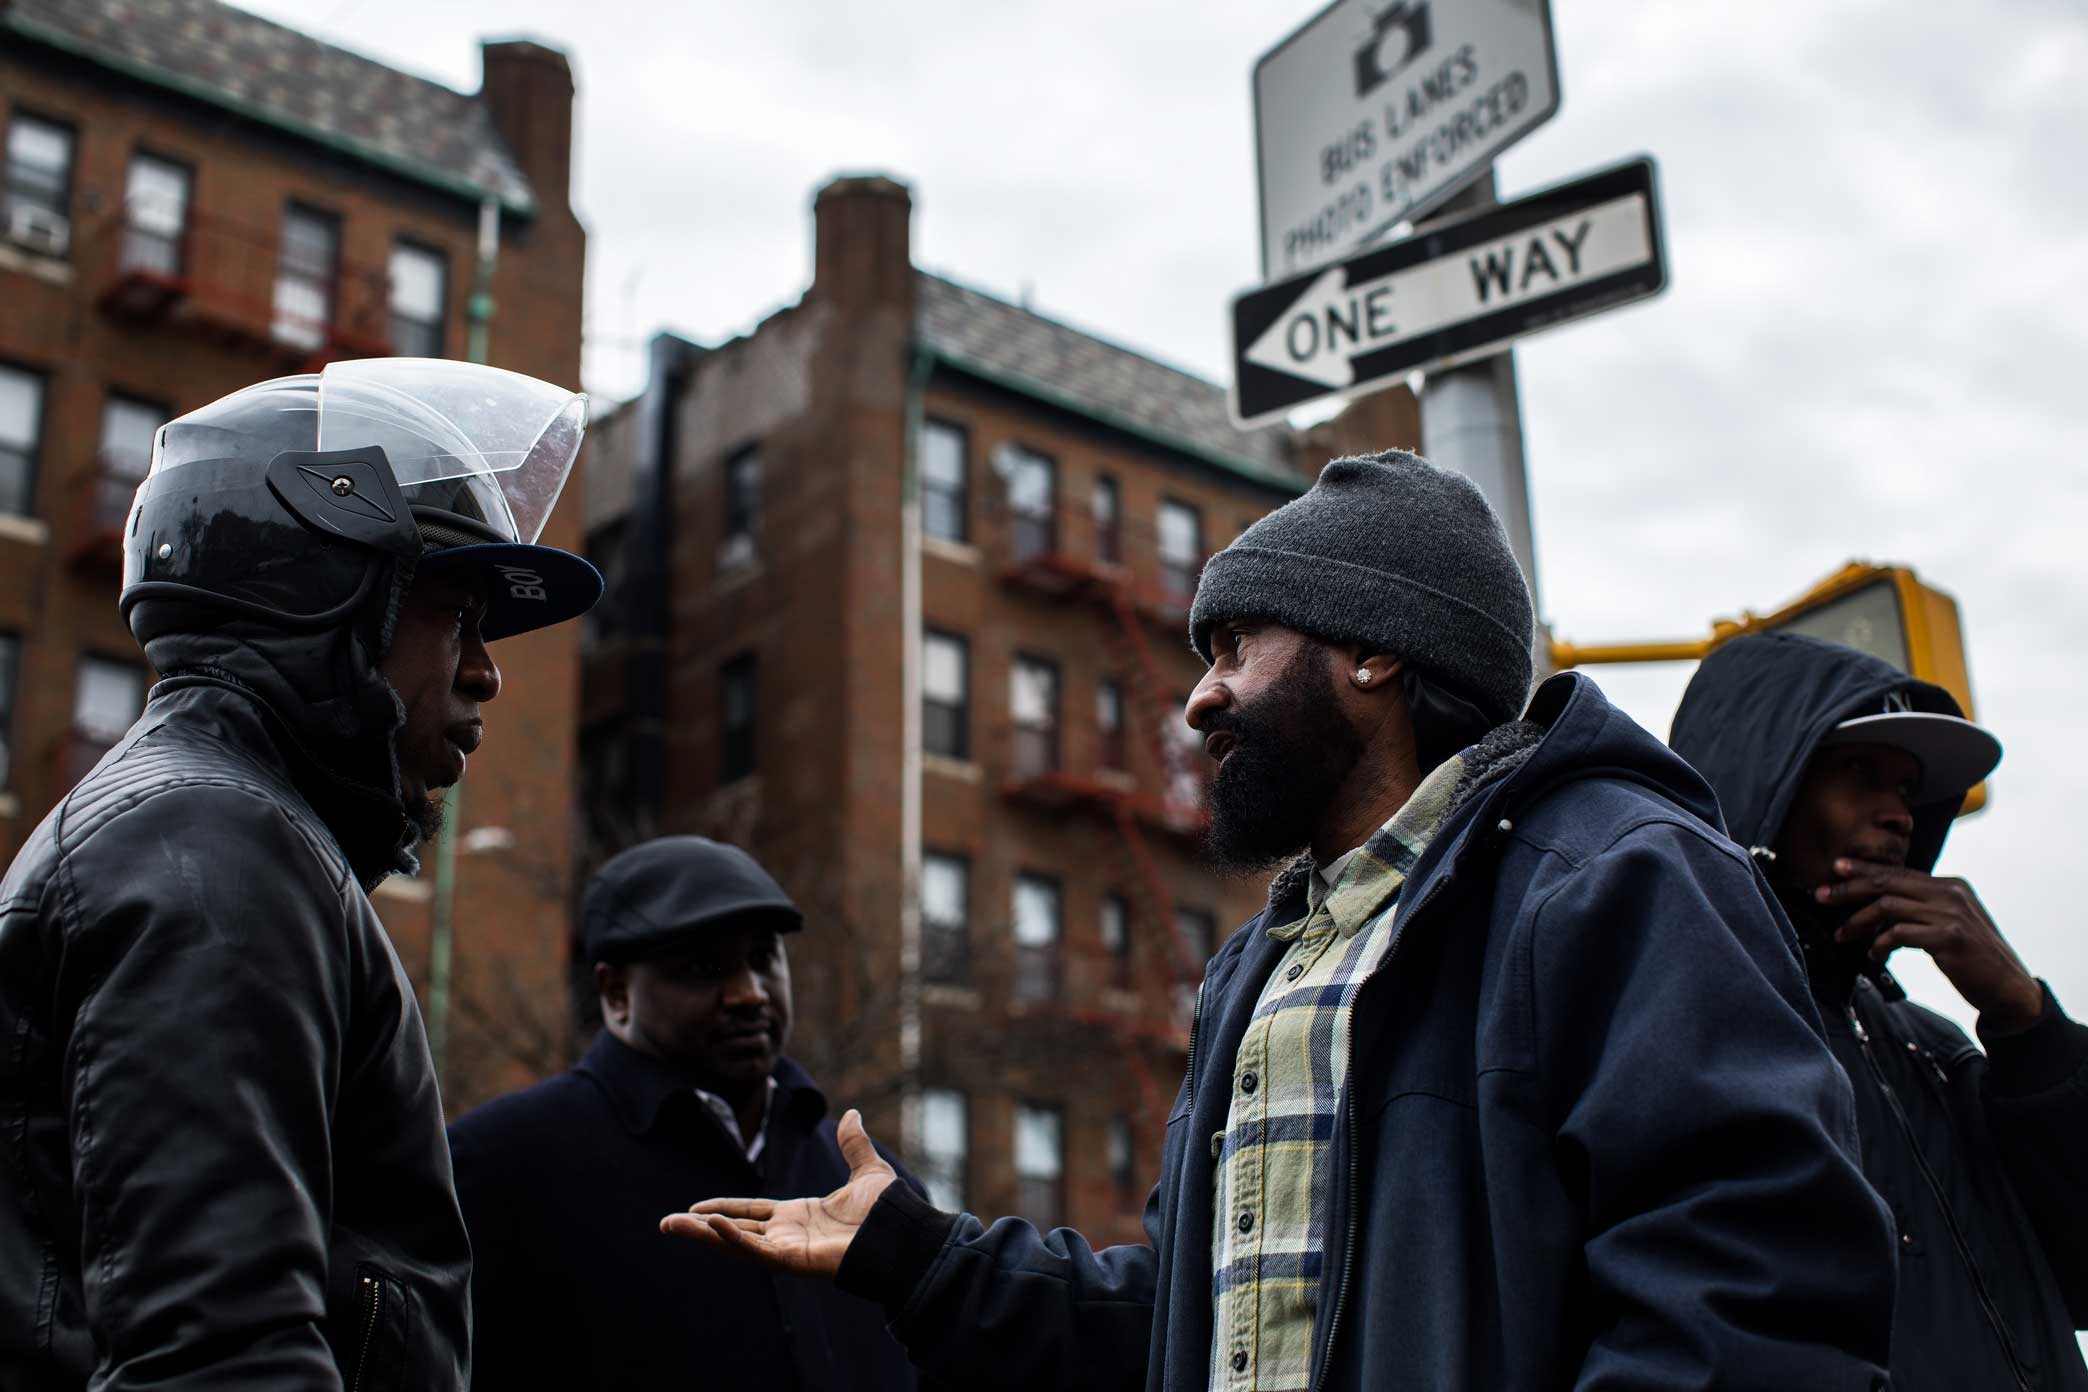 Micheal Thomas, middle, discuss with community member the problems with policing and their training at the memorial site for Saheed Vassell in Crown Heights Brooklyn.